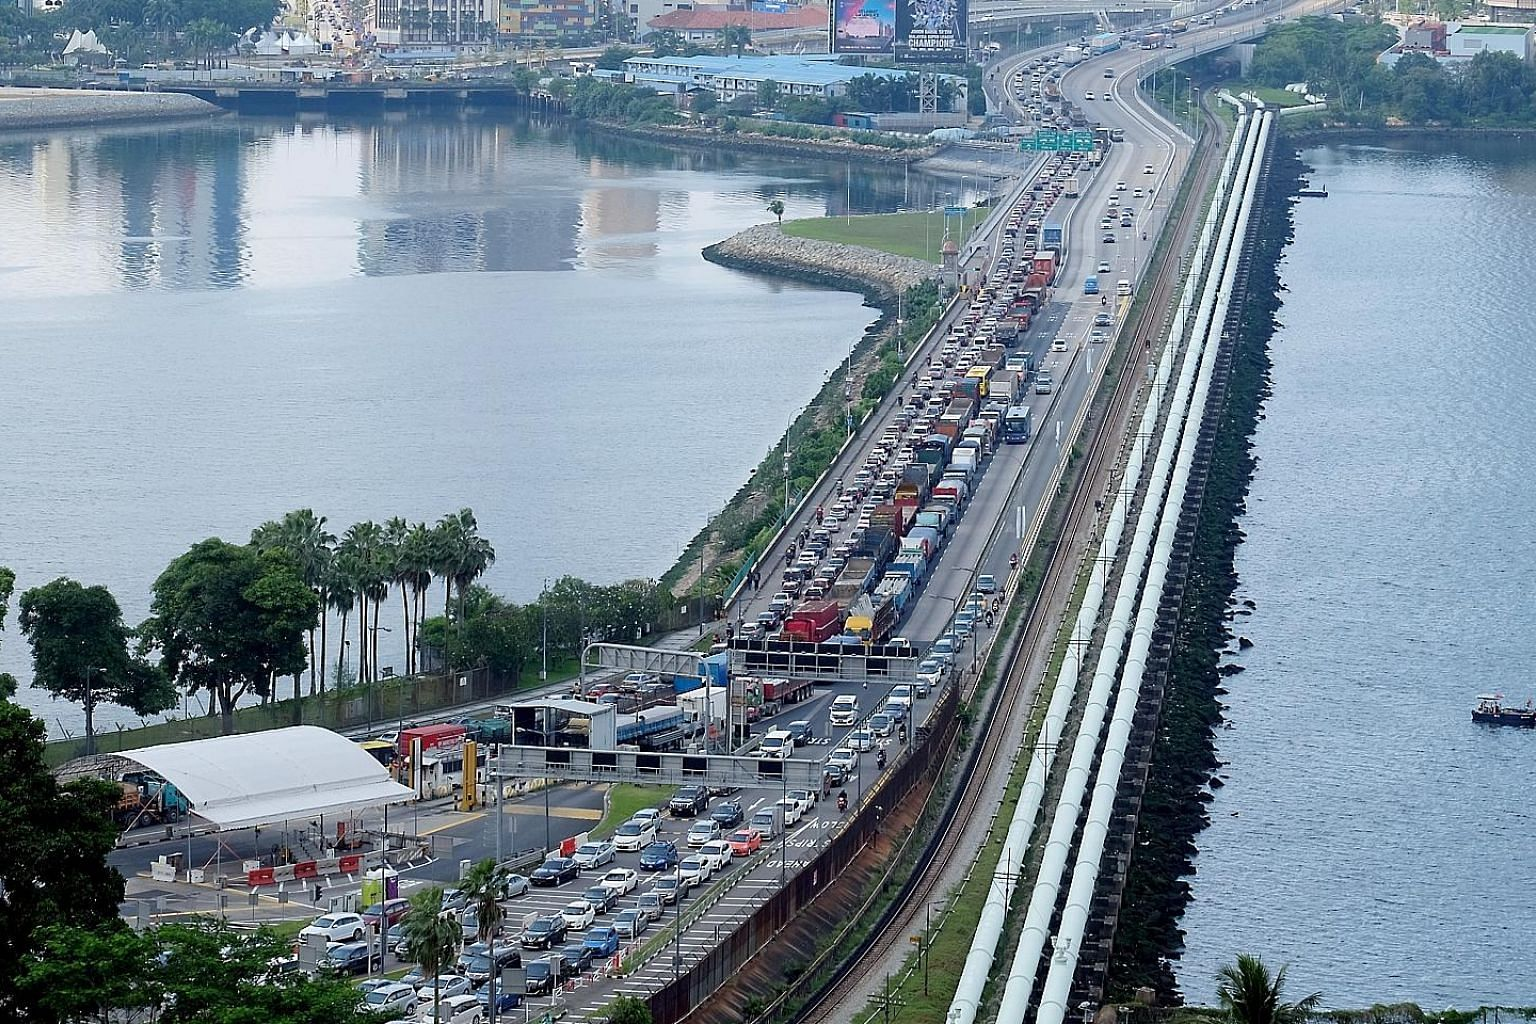 A file picture taken on Dec 22, 2018, showing the traffic jam at the Causeway. Malaysia is considering measures to ease the congestion, including expanding the link and creating a shipping lane. ST FILE PHOTO